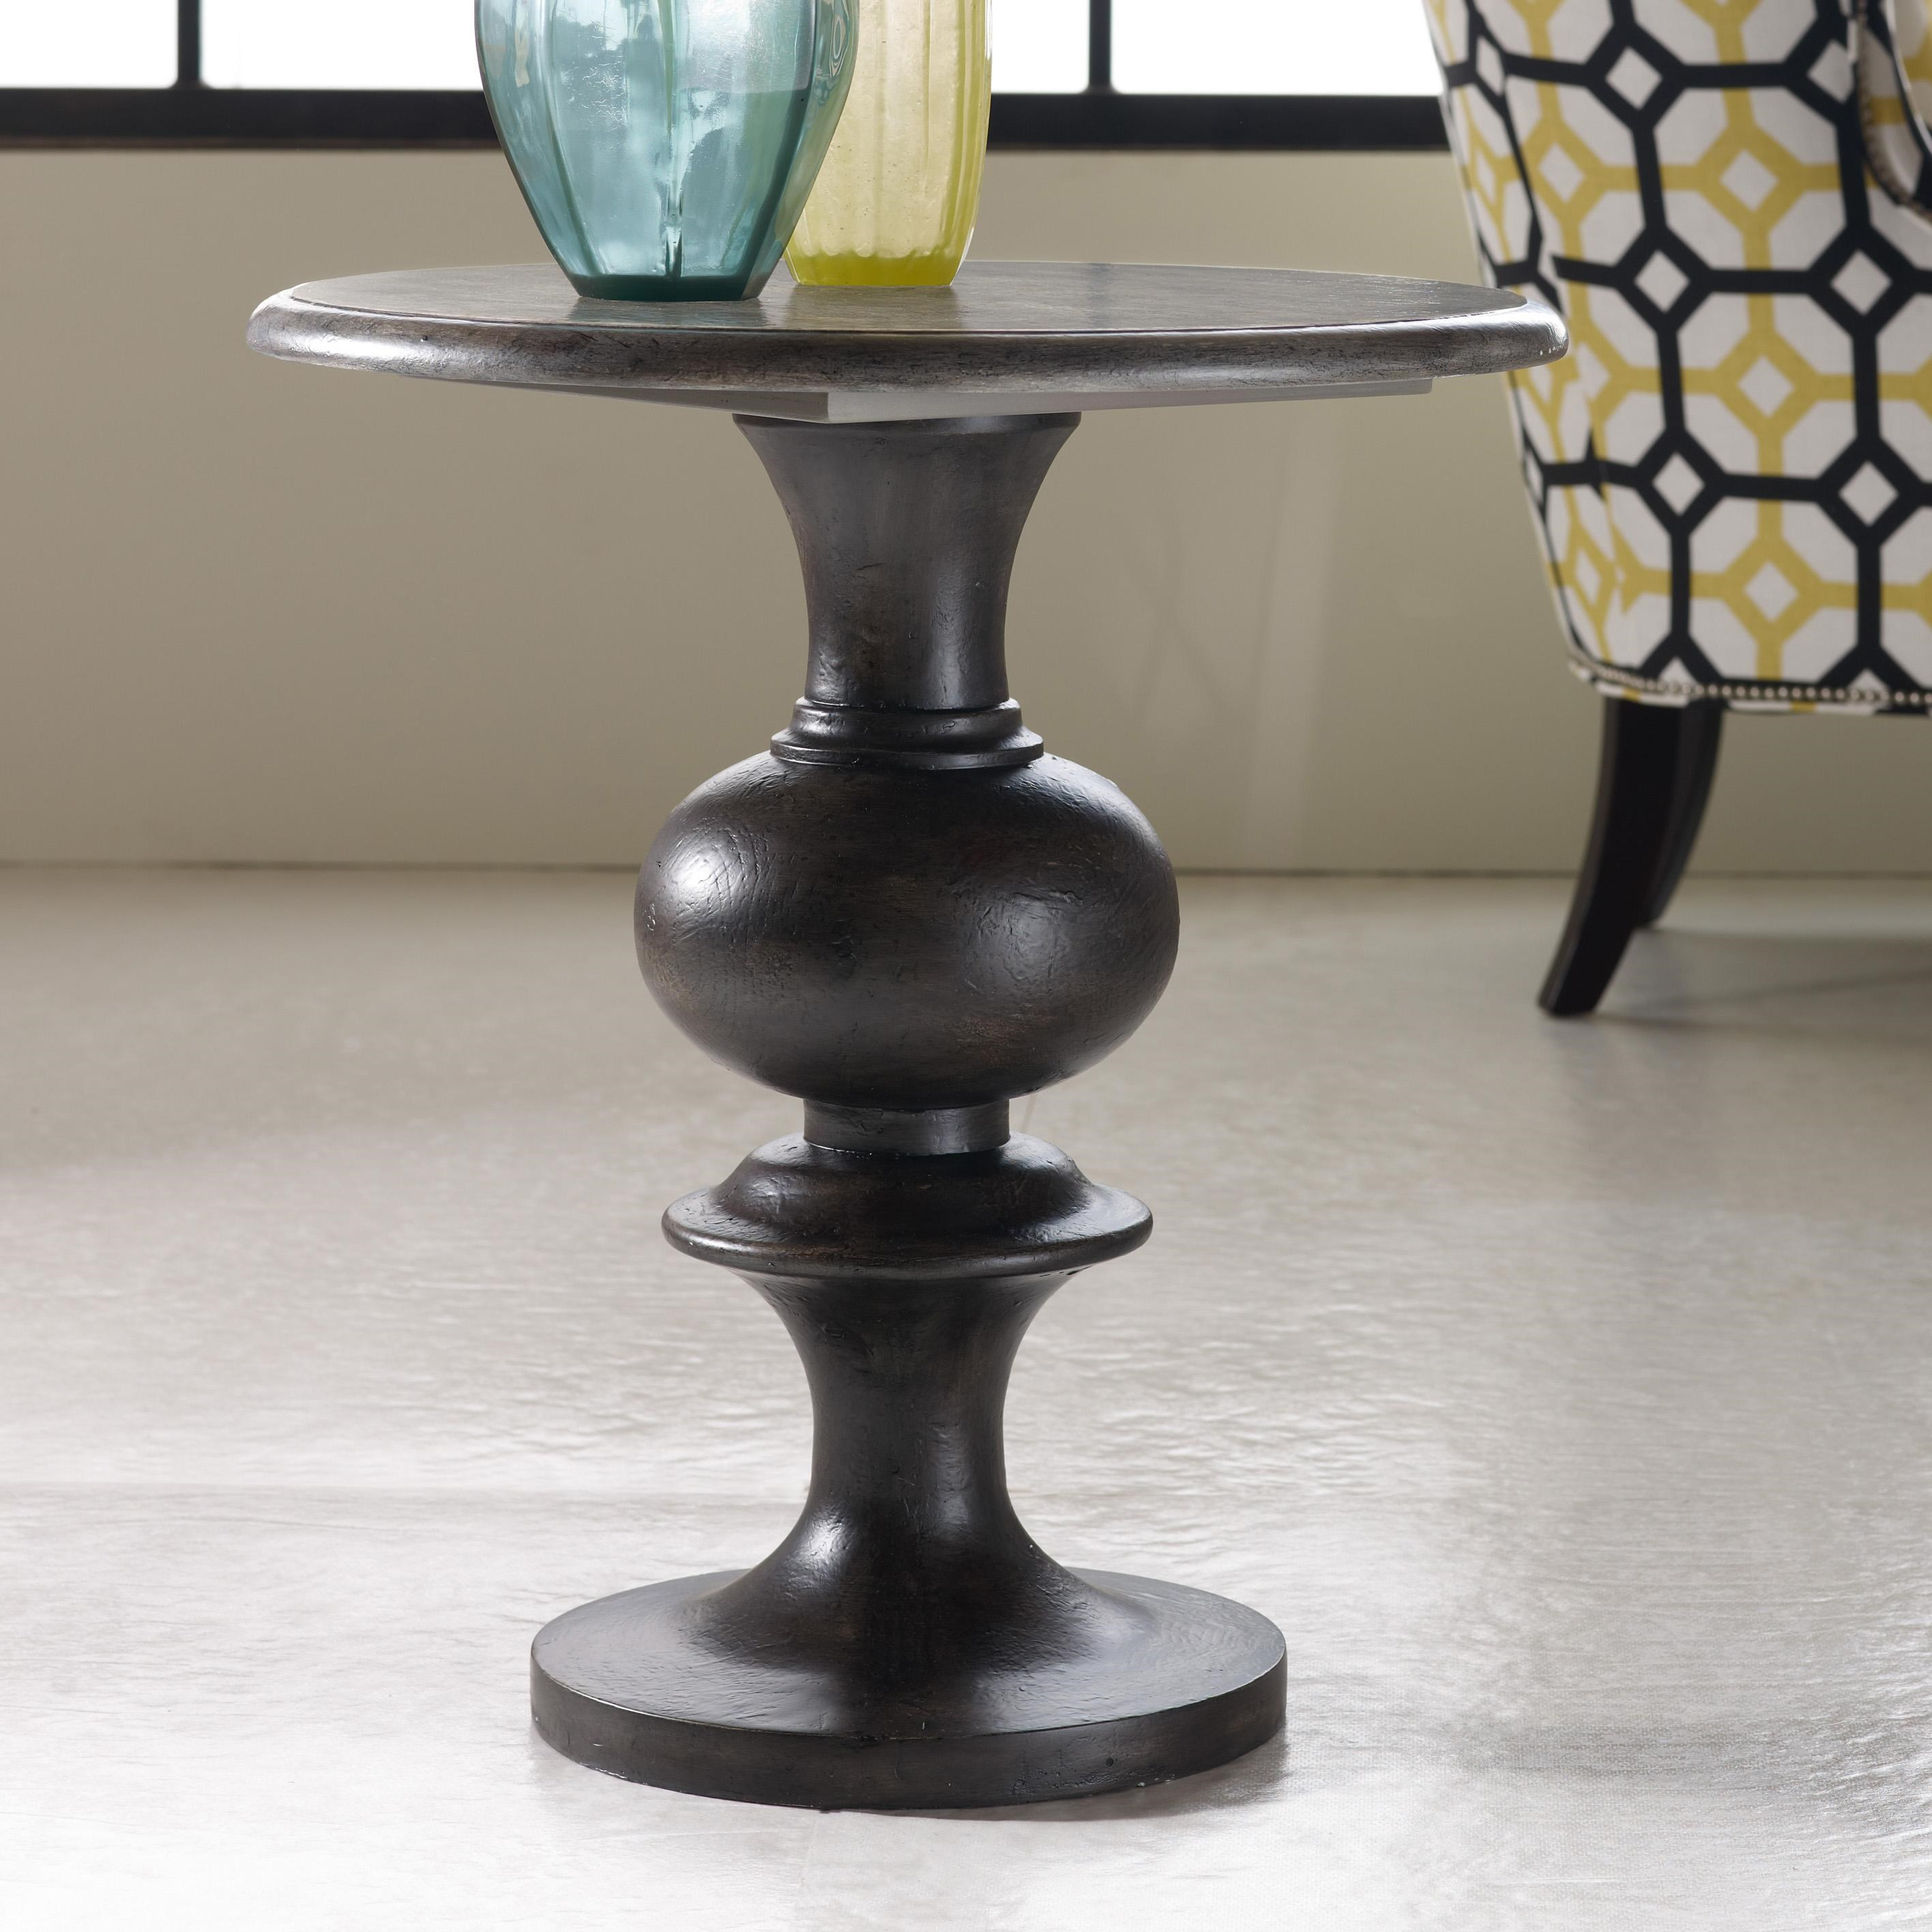 Exceptional Hamilton Home Mélange Hadley Round Top Pedestal Table